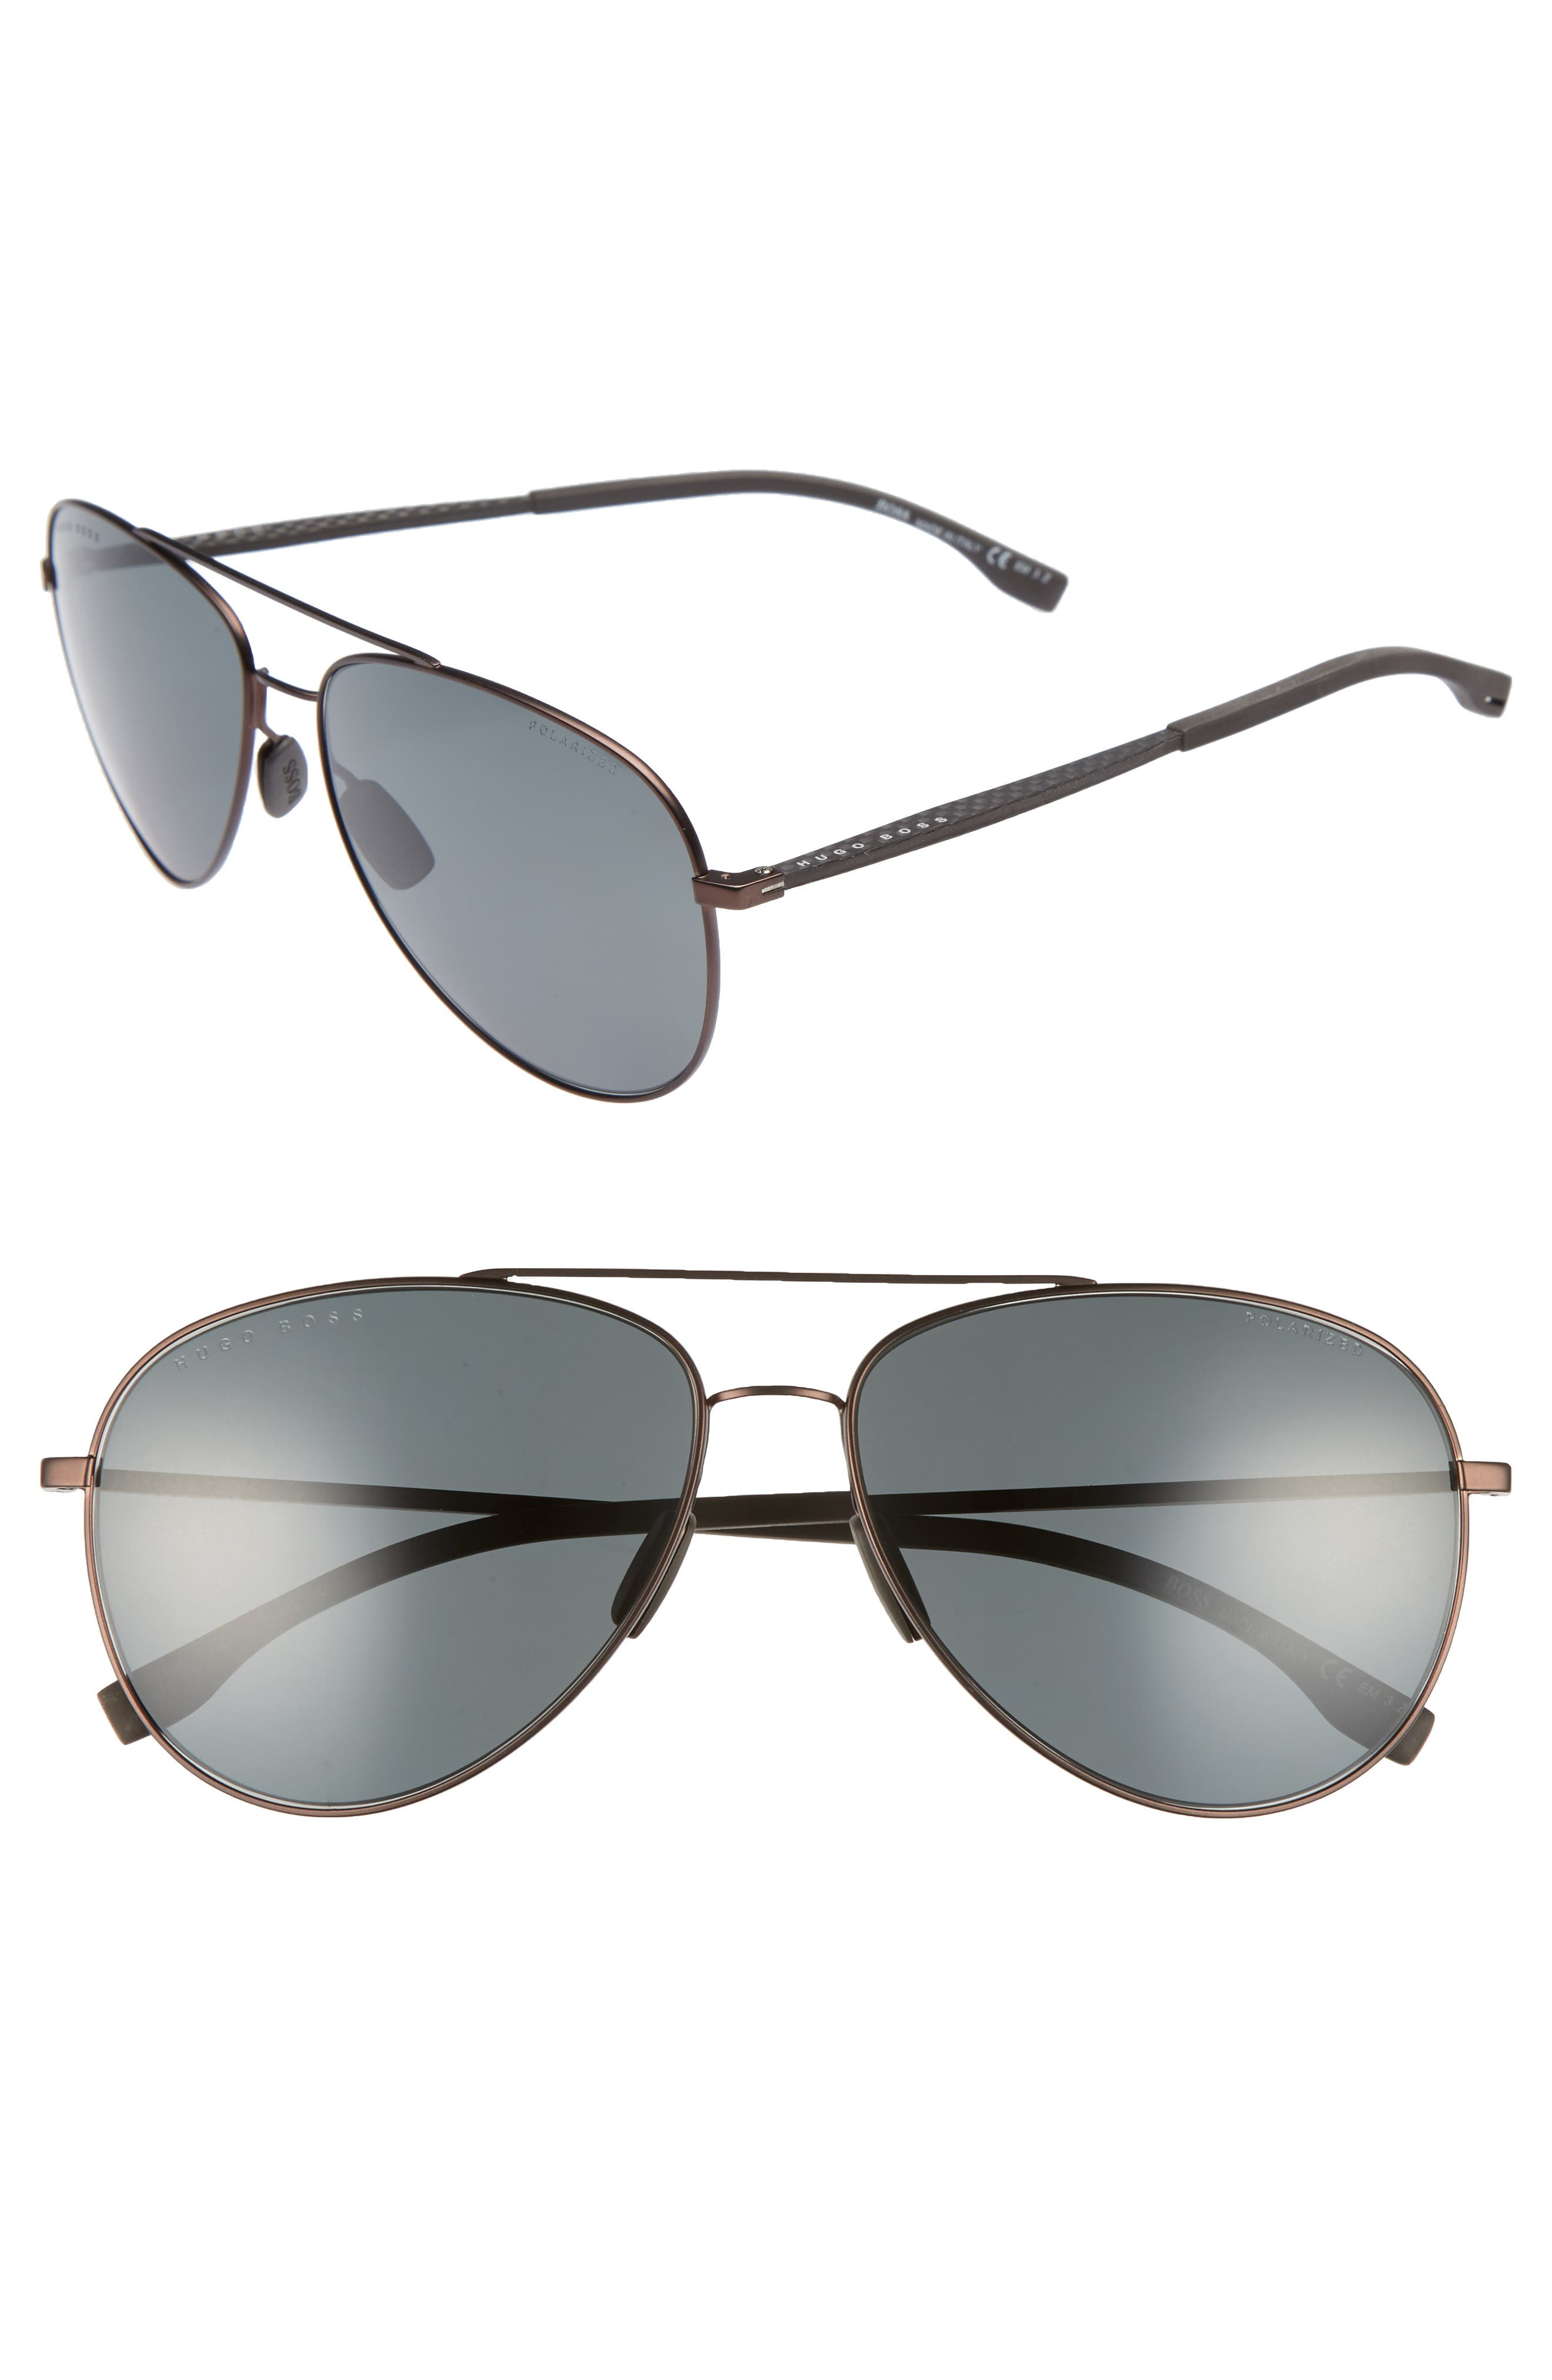 59mm Aviator Sunglasses,                             Main thumbnail 1, color,                             Brown Rubber/ Brown